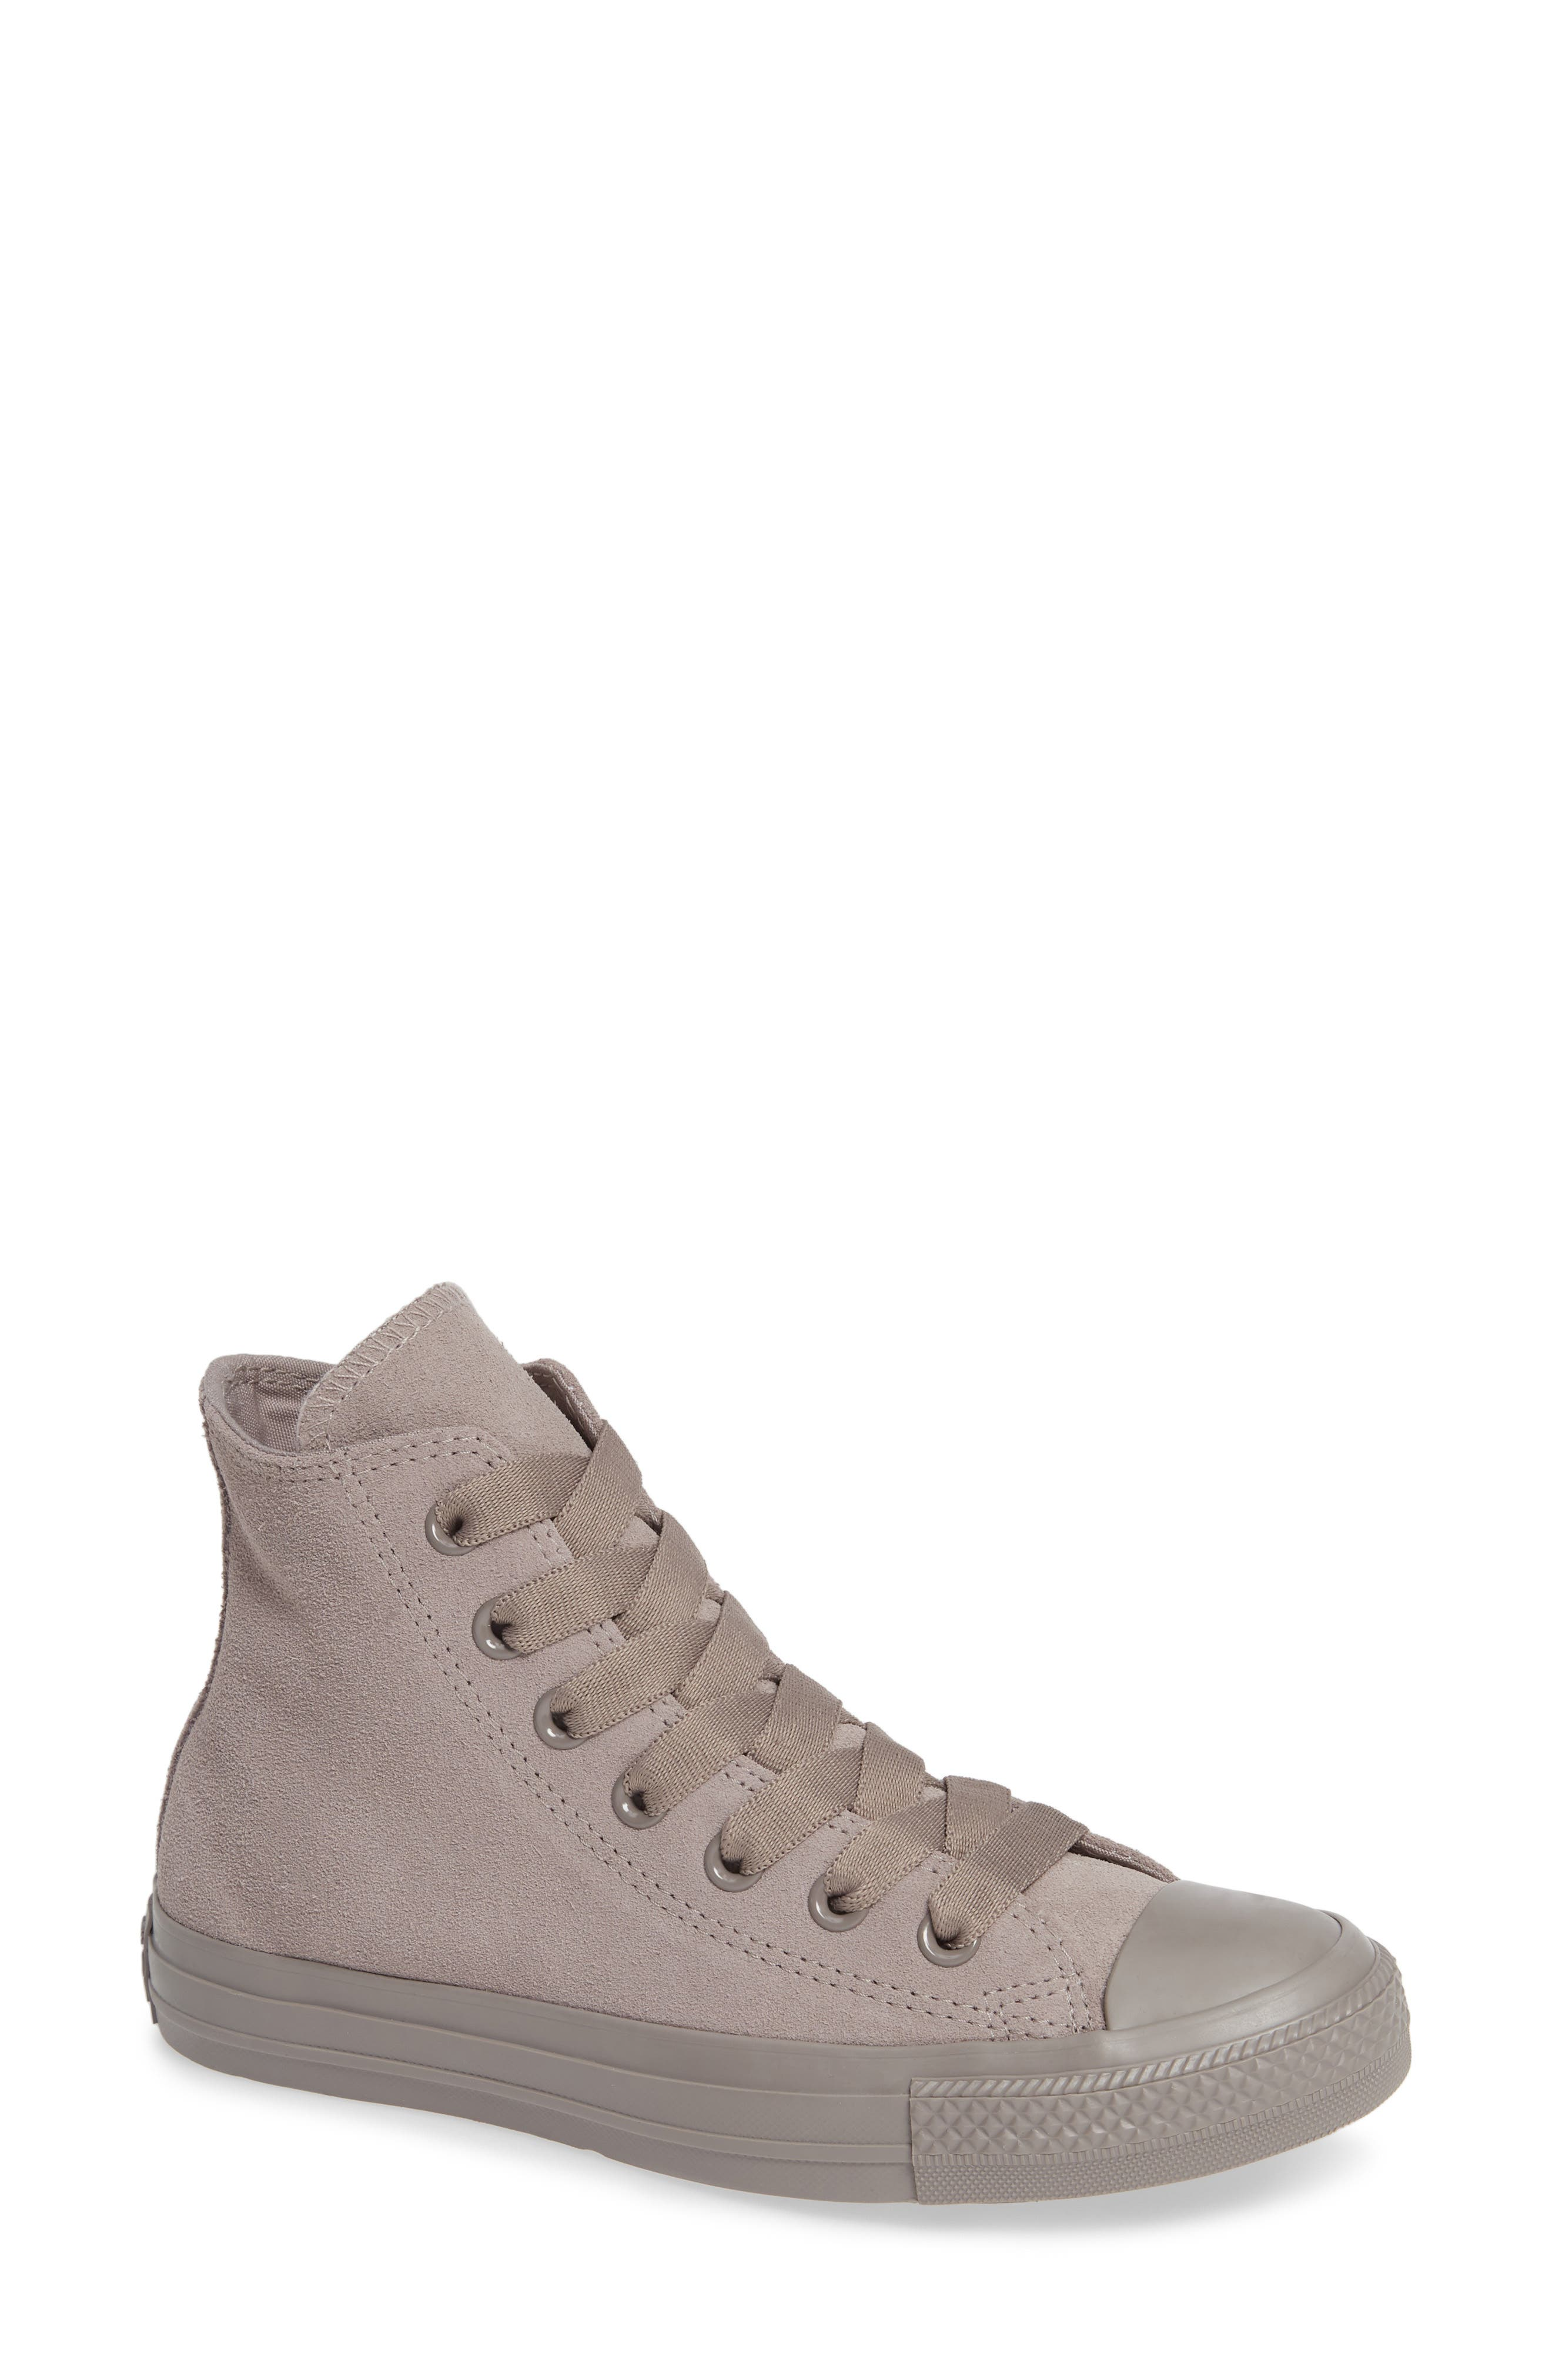 CONVERSE, Chuck Taylor<sup>®</sup> All Star<sup>®</sup> Hi Sneaker, Main thumbnail 1, color, MERCURY GREY SUEDE